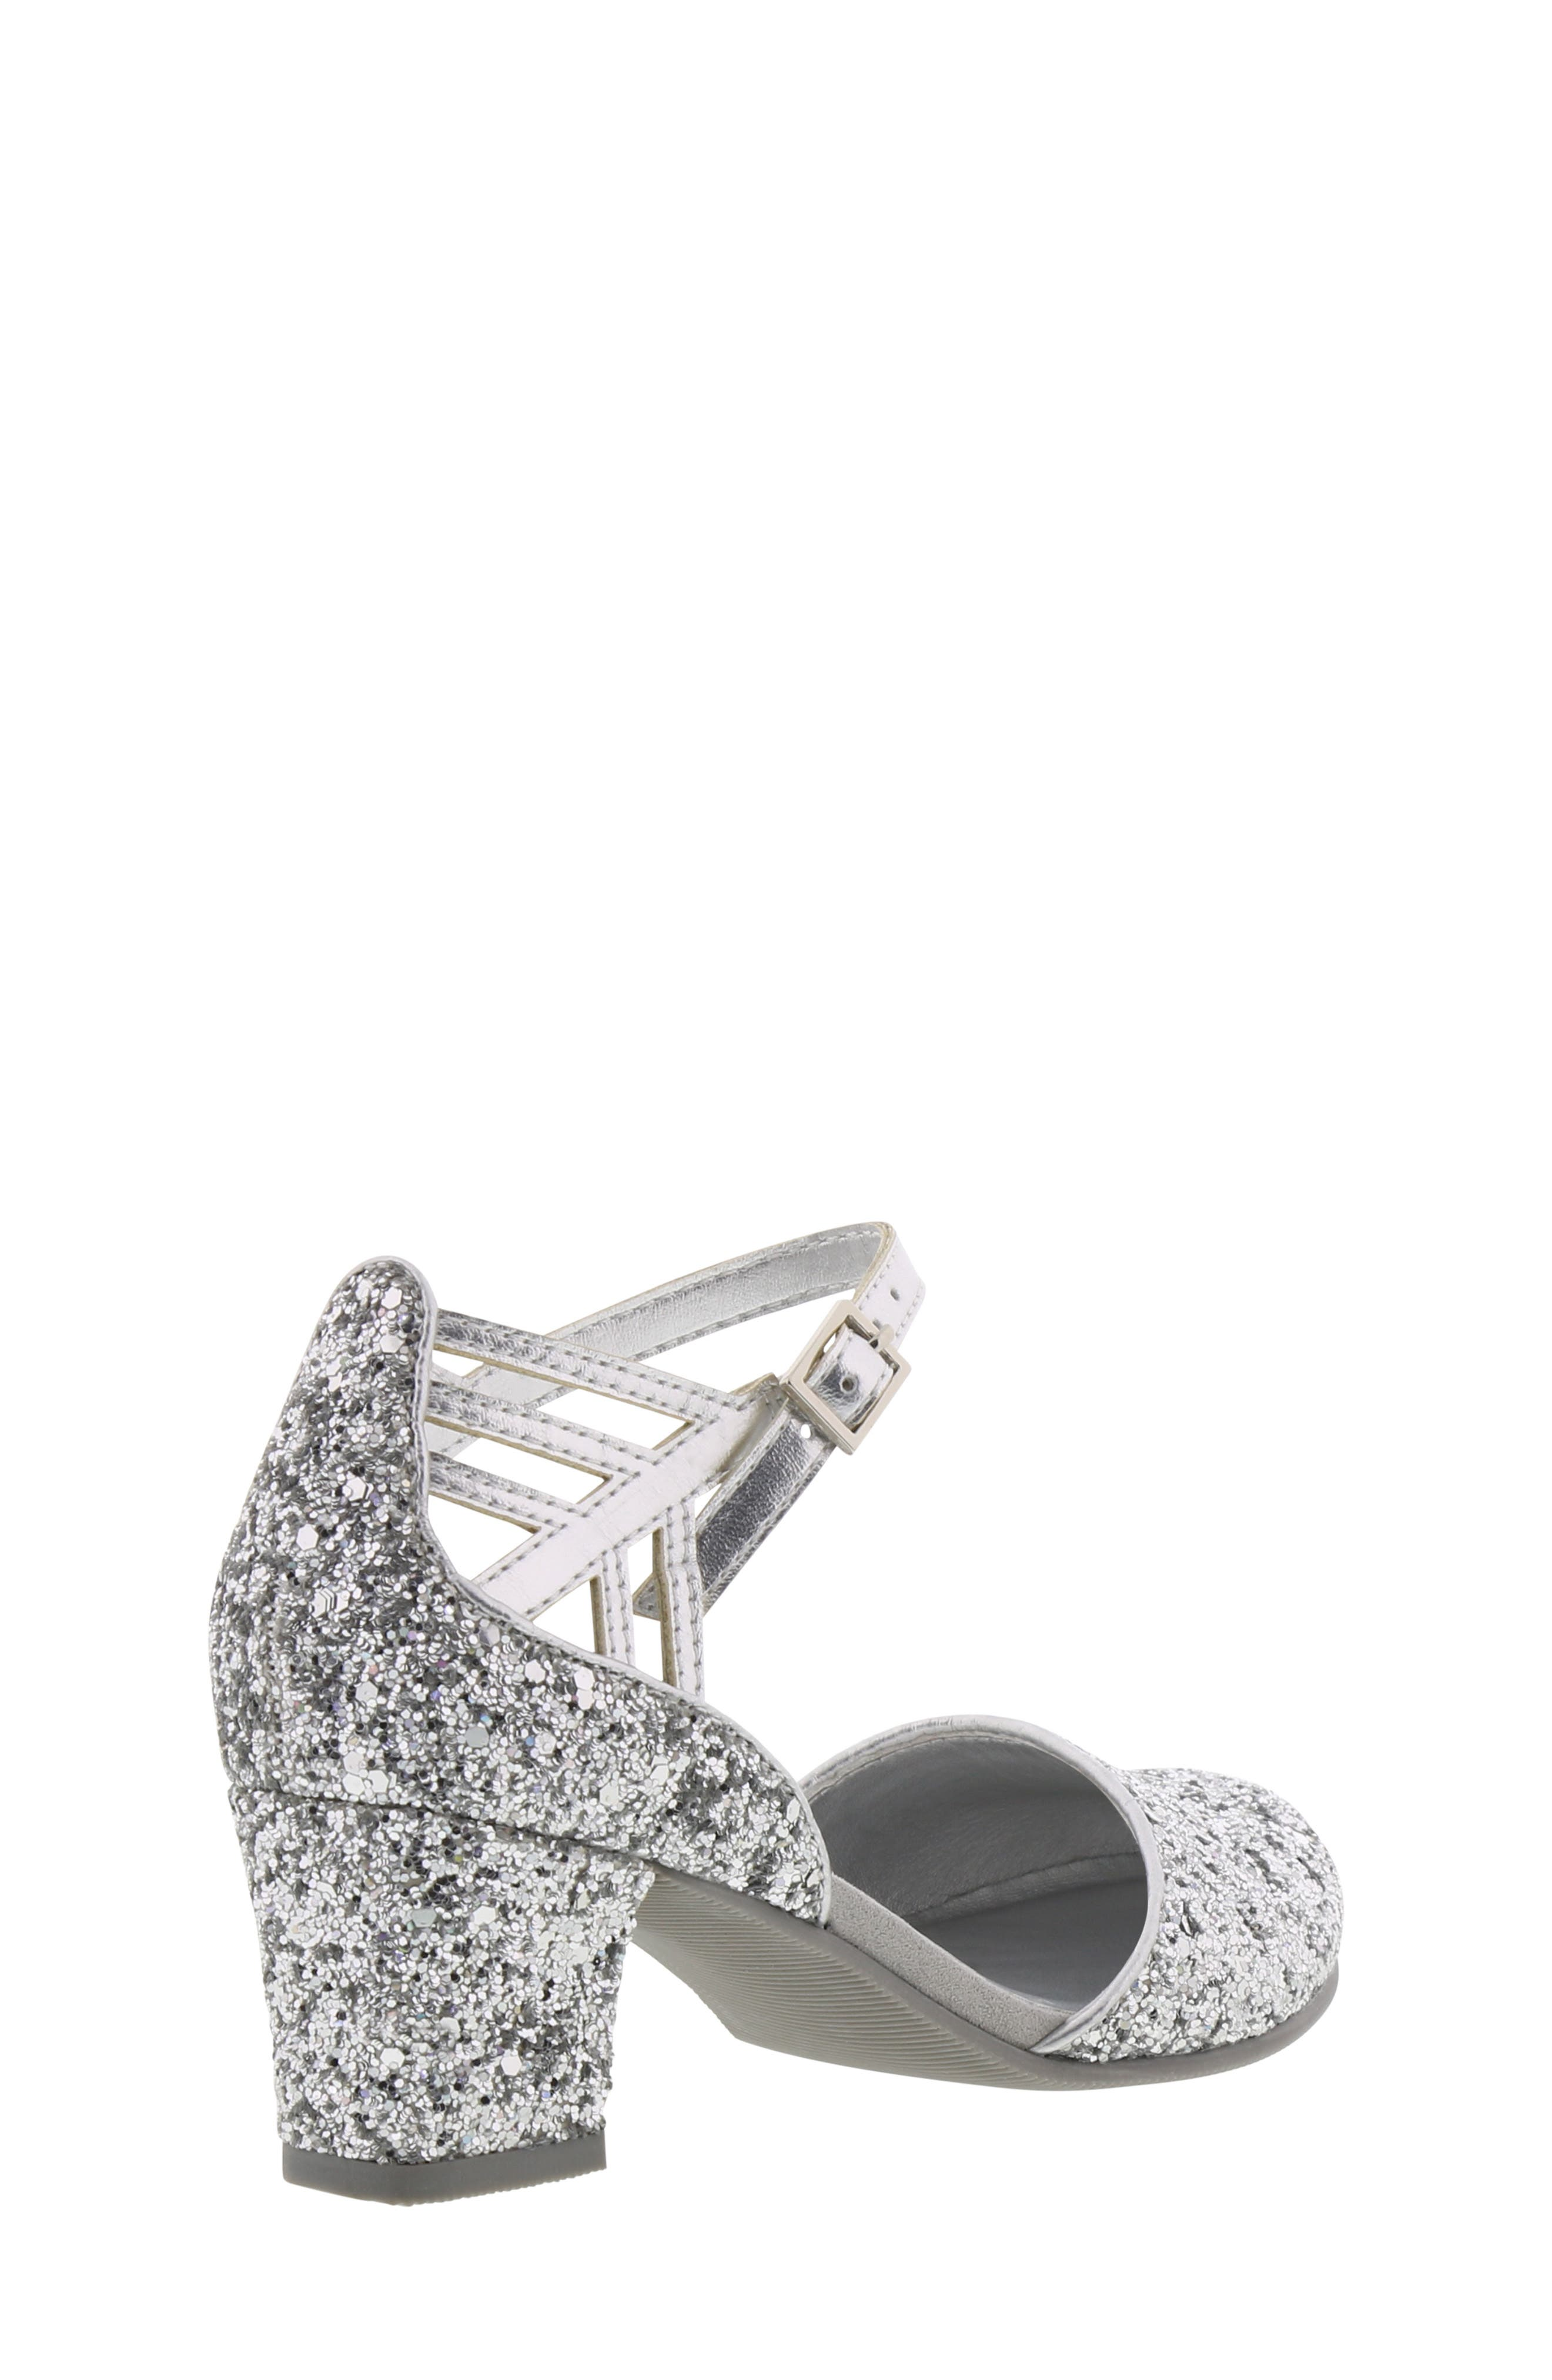 REACTION KENNETH COLE, Kenneth Cole New York Sarah Shine Pump, Alternate thumbnail 2, color, SILVER MULTI